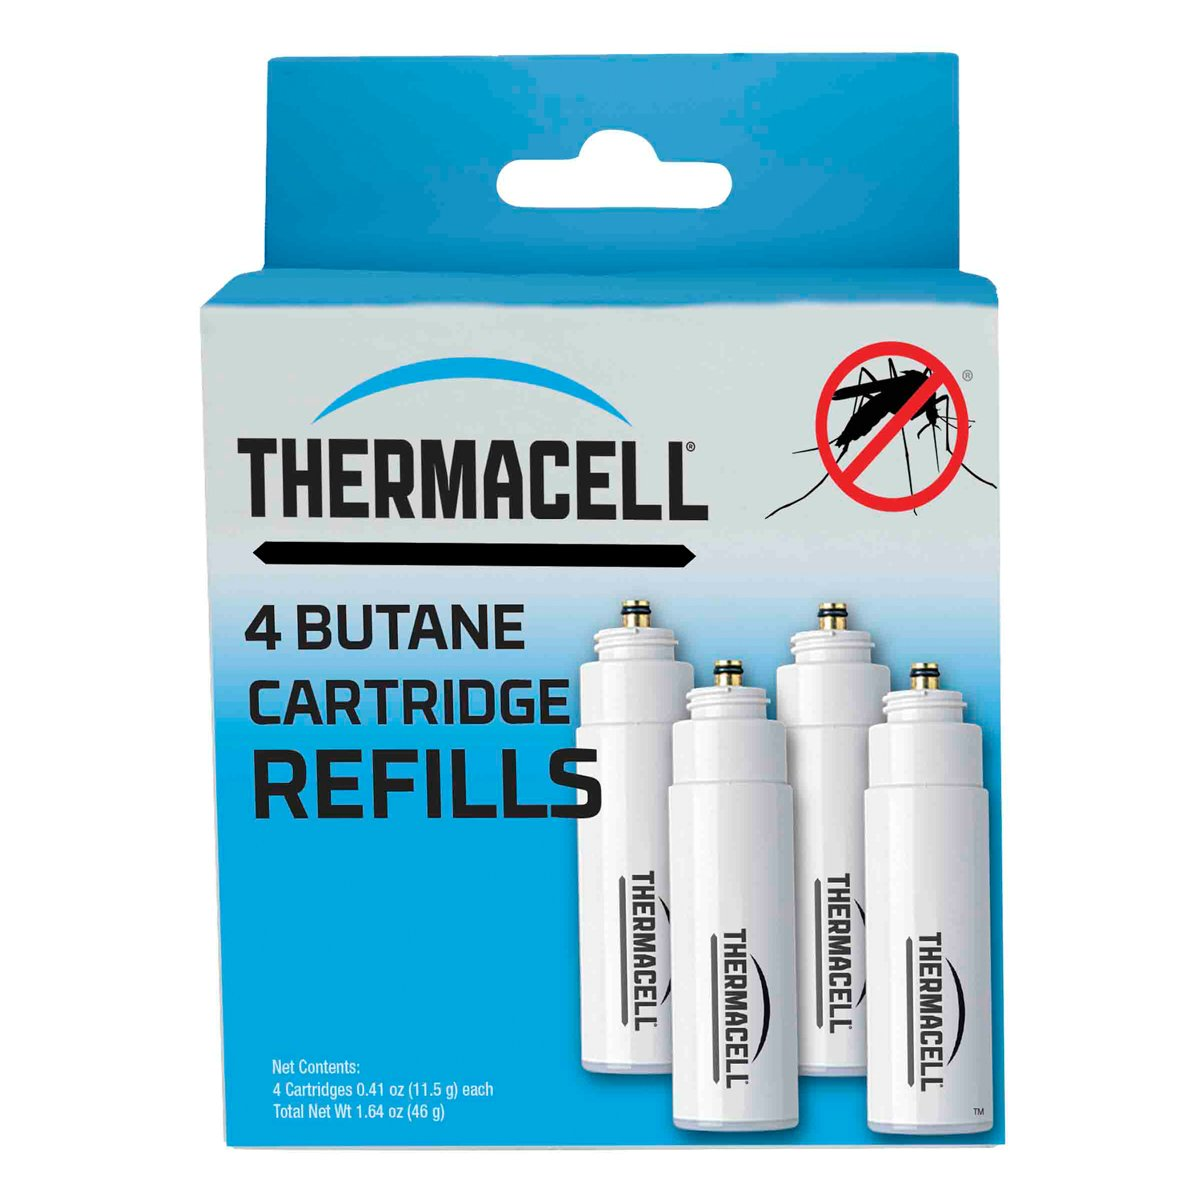 Thermacell C-4 Fuel Cartridge Refill, 4-Pack by Thermacell (Image #4)